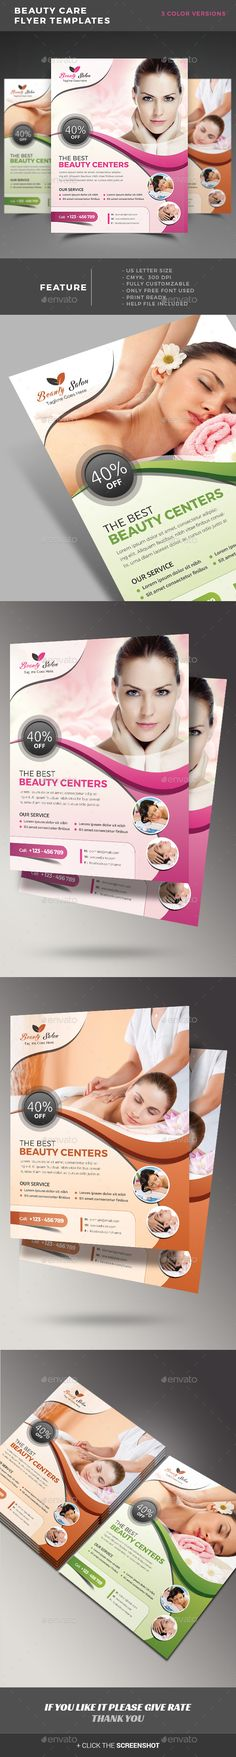 Beauty Care Flyer Template PSD. Download here: https://graphicriver.net/item/beauty-care-flyer-templates-/17381838?ref=ksioks